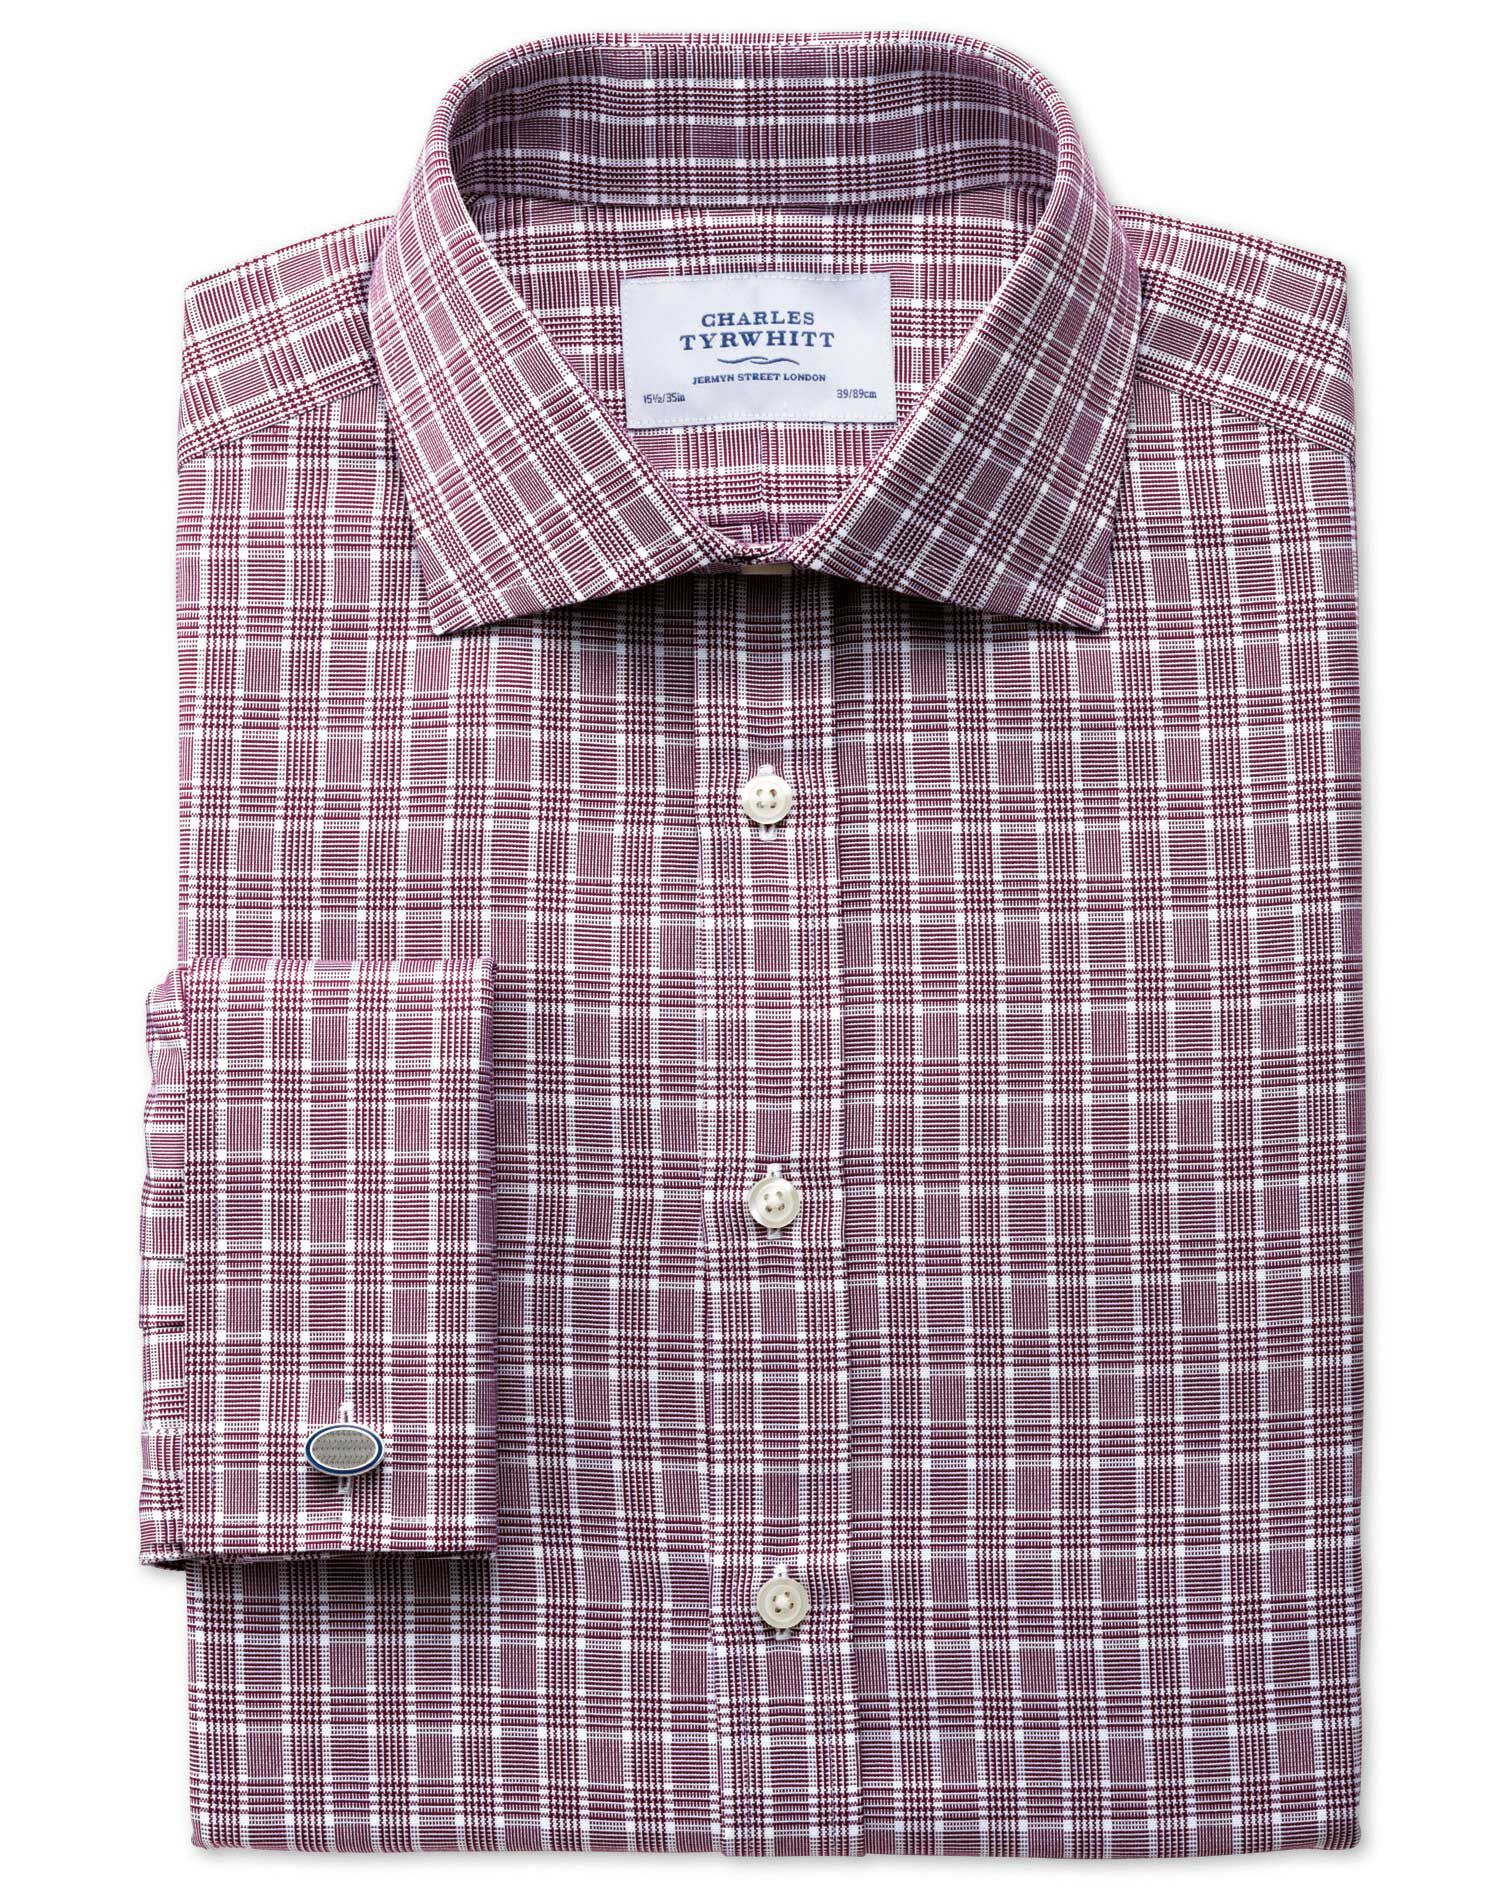 Slim Fit Prince Of Wales Berry Cotton Formal Shirt Double Cuff Size 14.5/33 by Charles Tyrwhitt